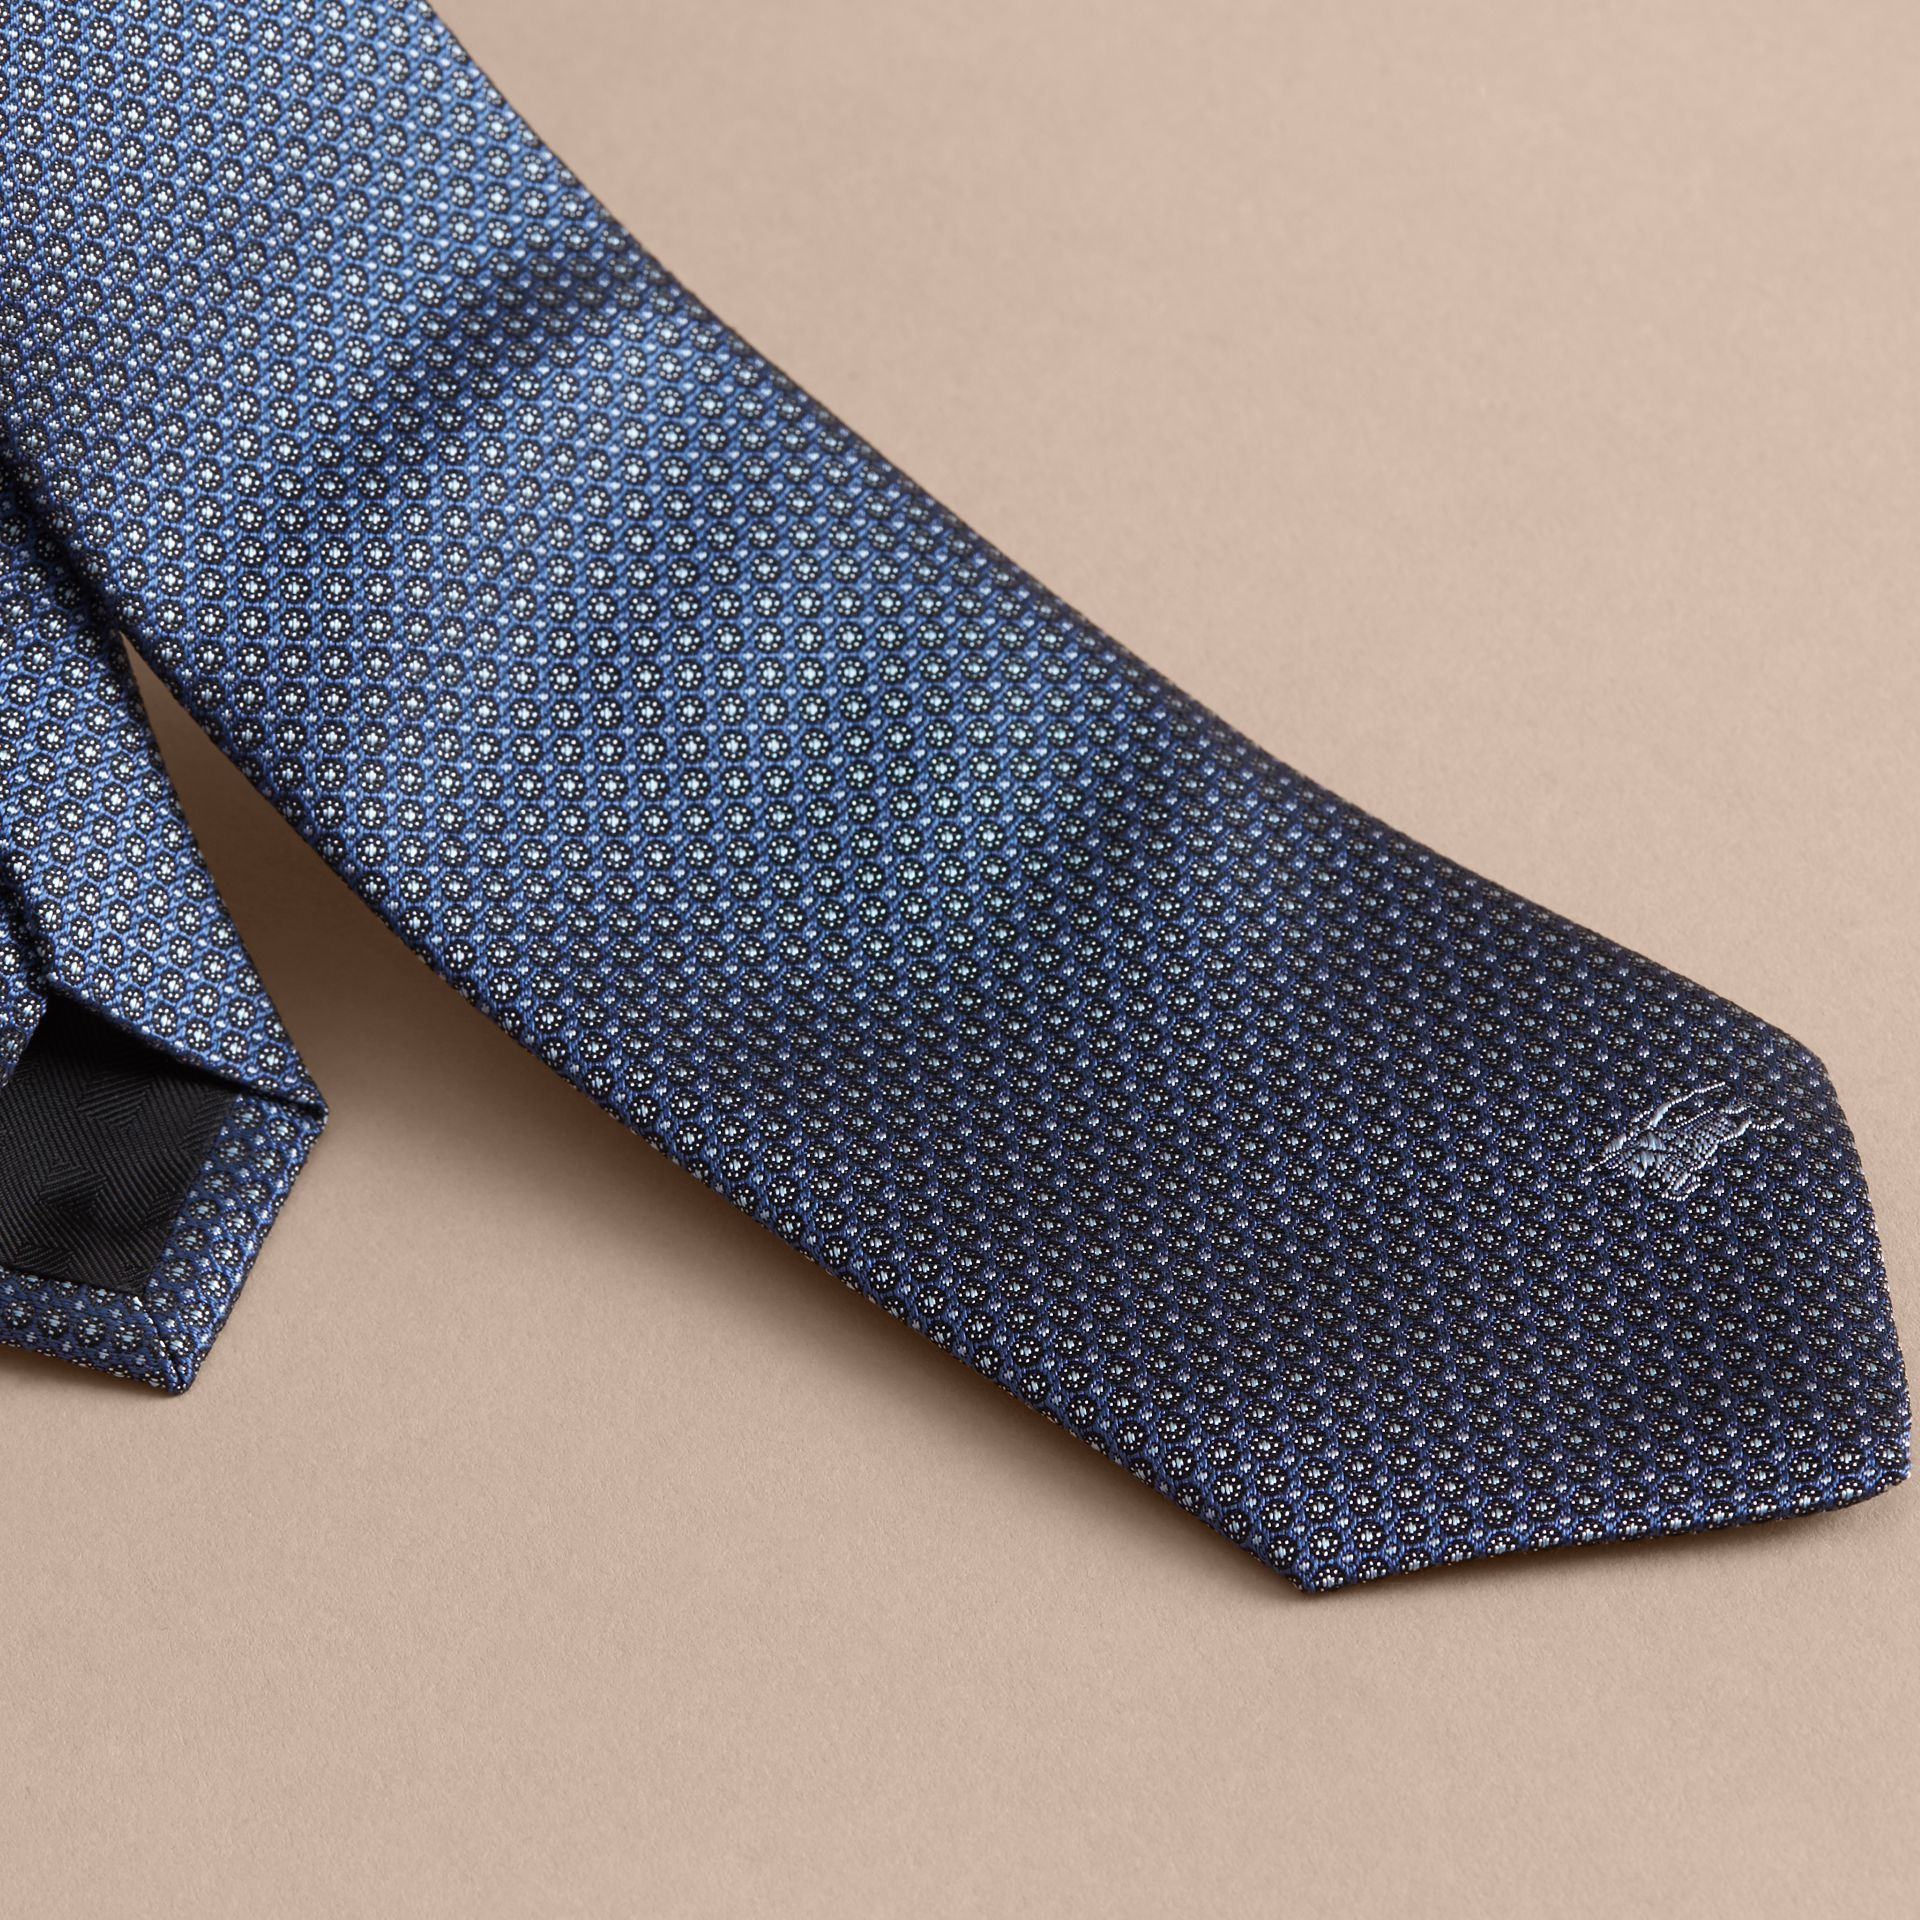 Modern Cut Patterned Silk Tie in Light Blue - Men | Burberry - gallery image 2